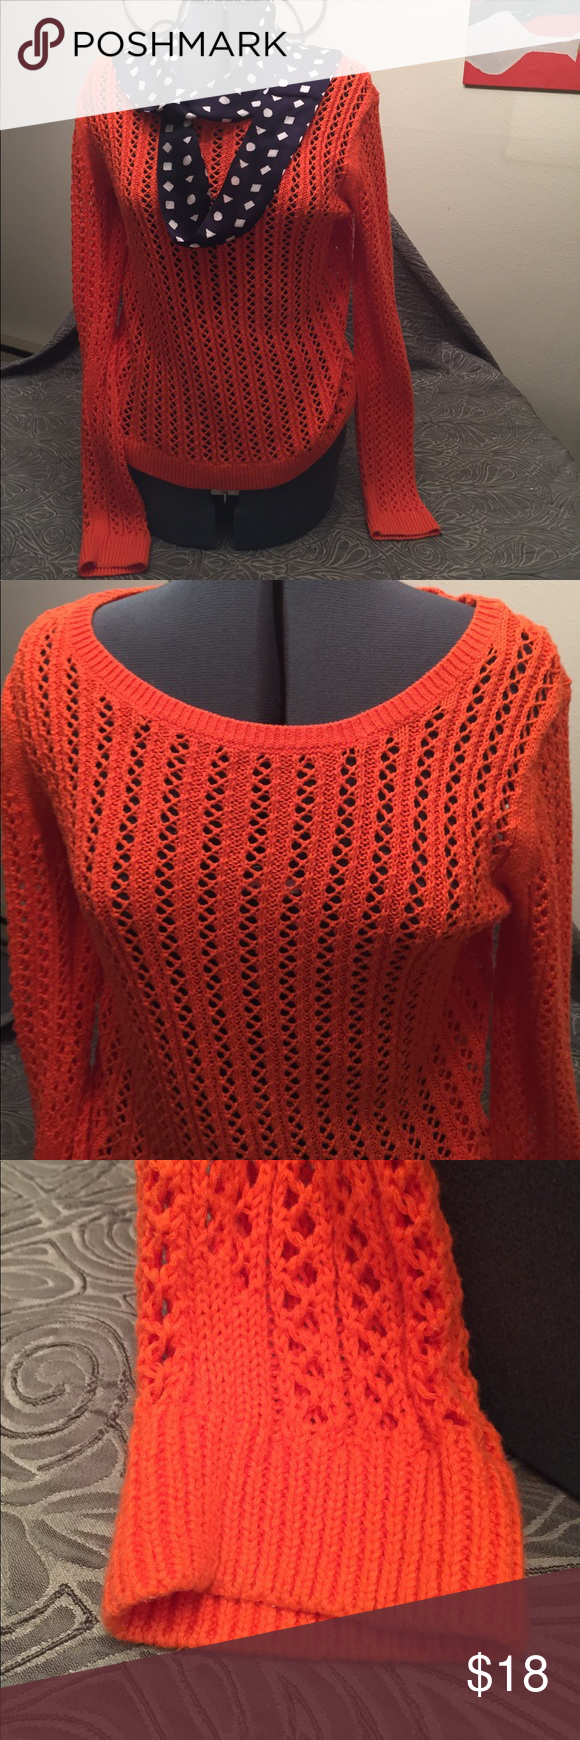 3 for $10 🌝Orange Open-weave sweater | White slacks, Orange ...